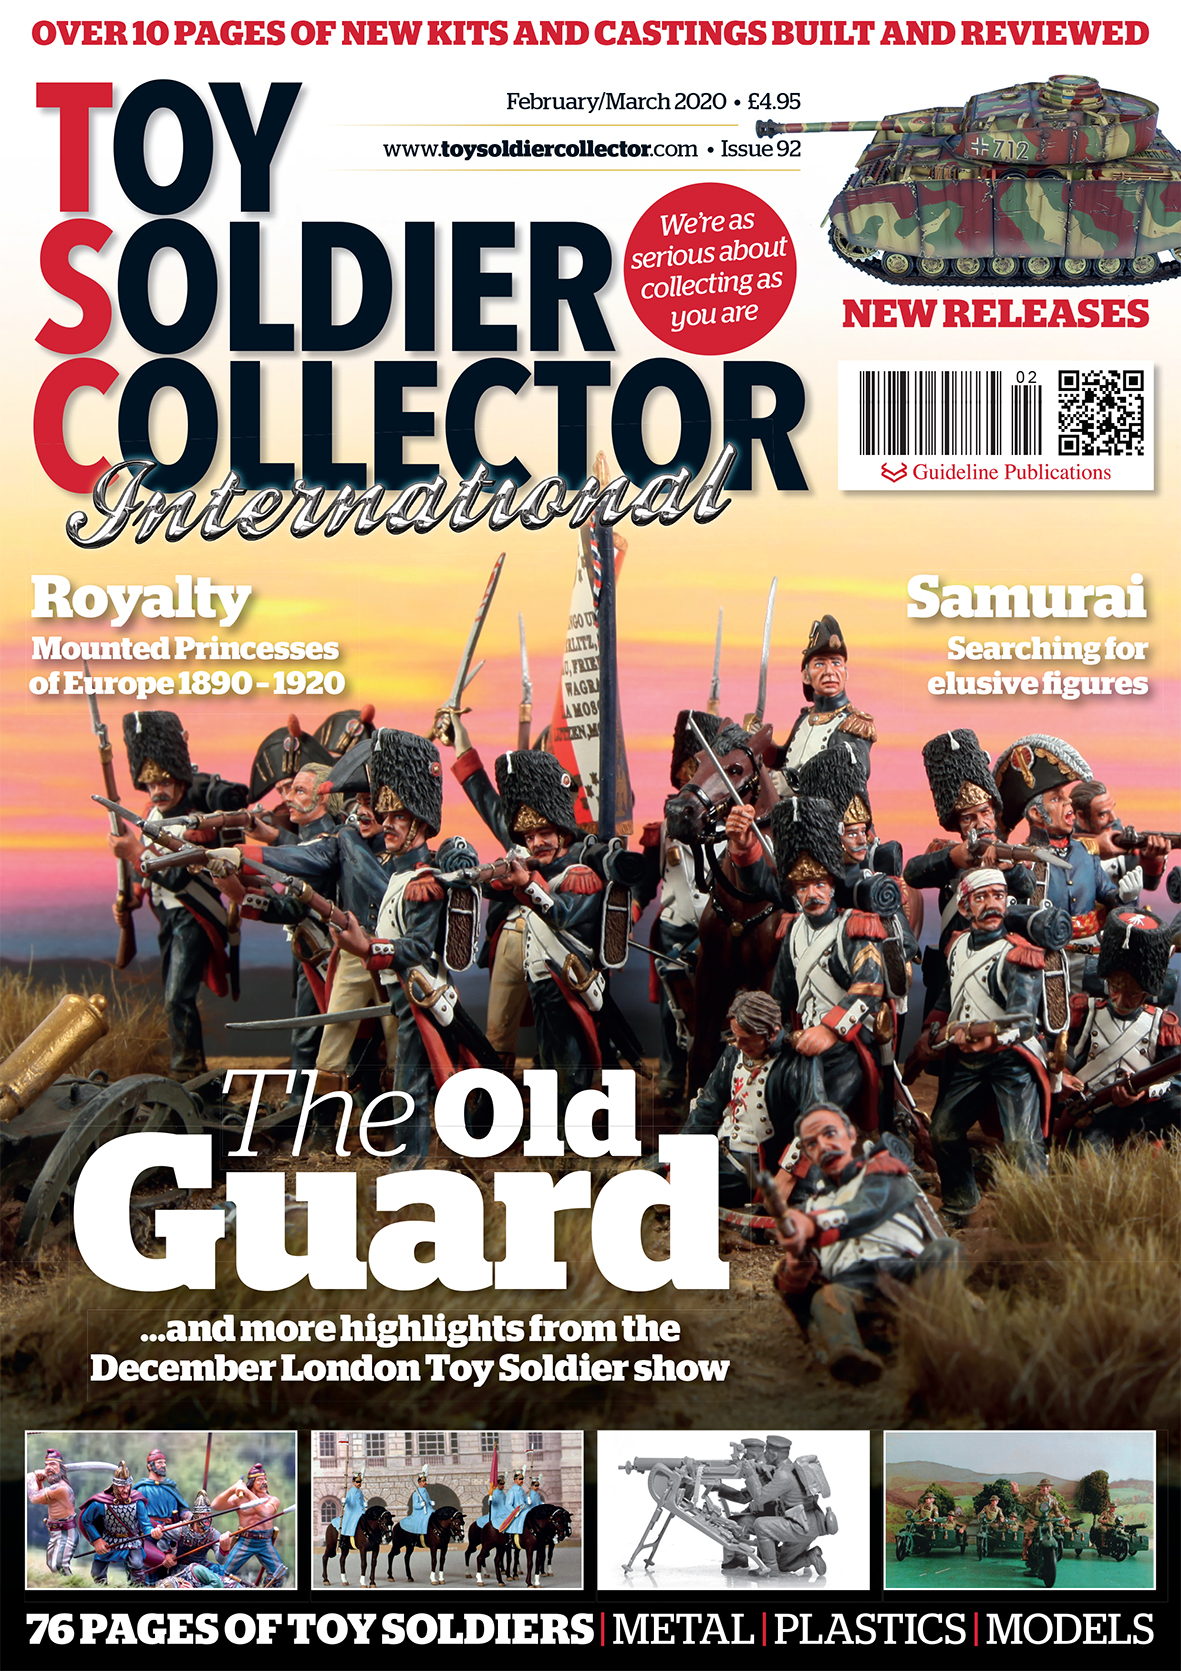 Guideline Publications Toy Soldier Collector #92 Feb/March 2020 Issue 92